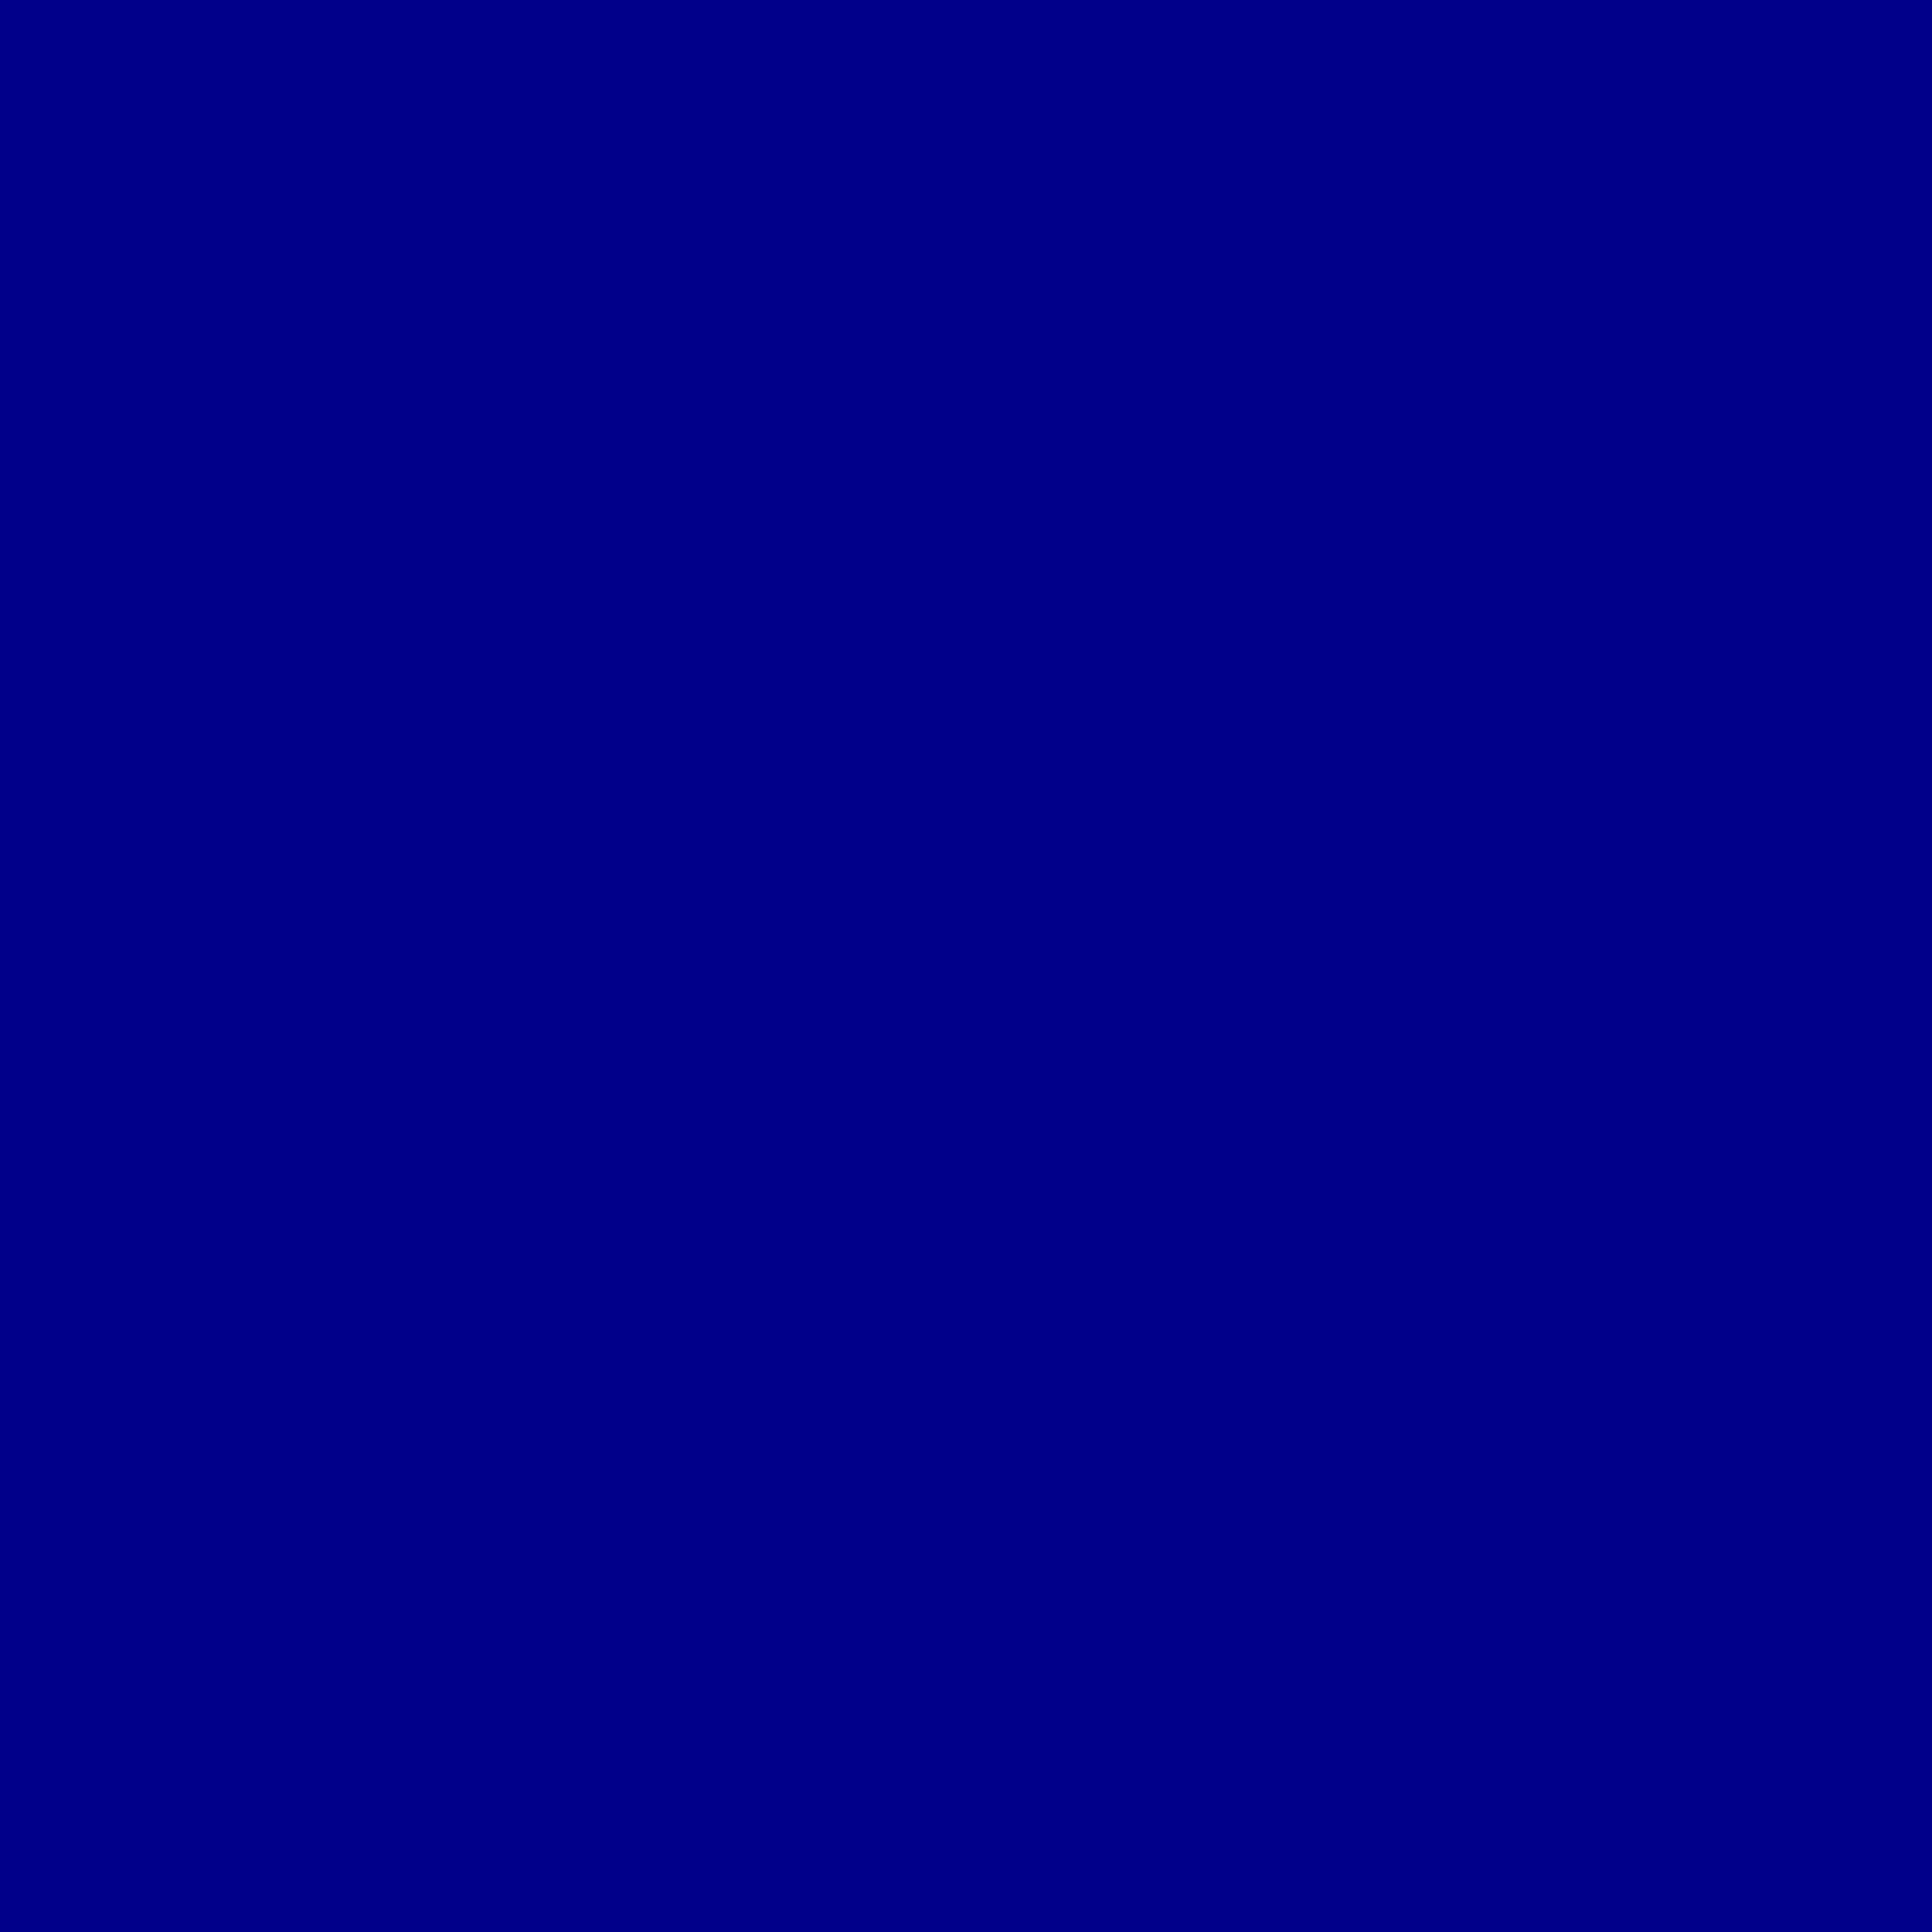 Best Colors With Purple Solid Blue Background Wallpaper Wallpapersafari